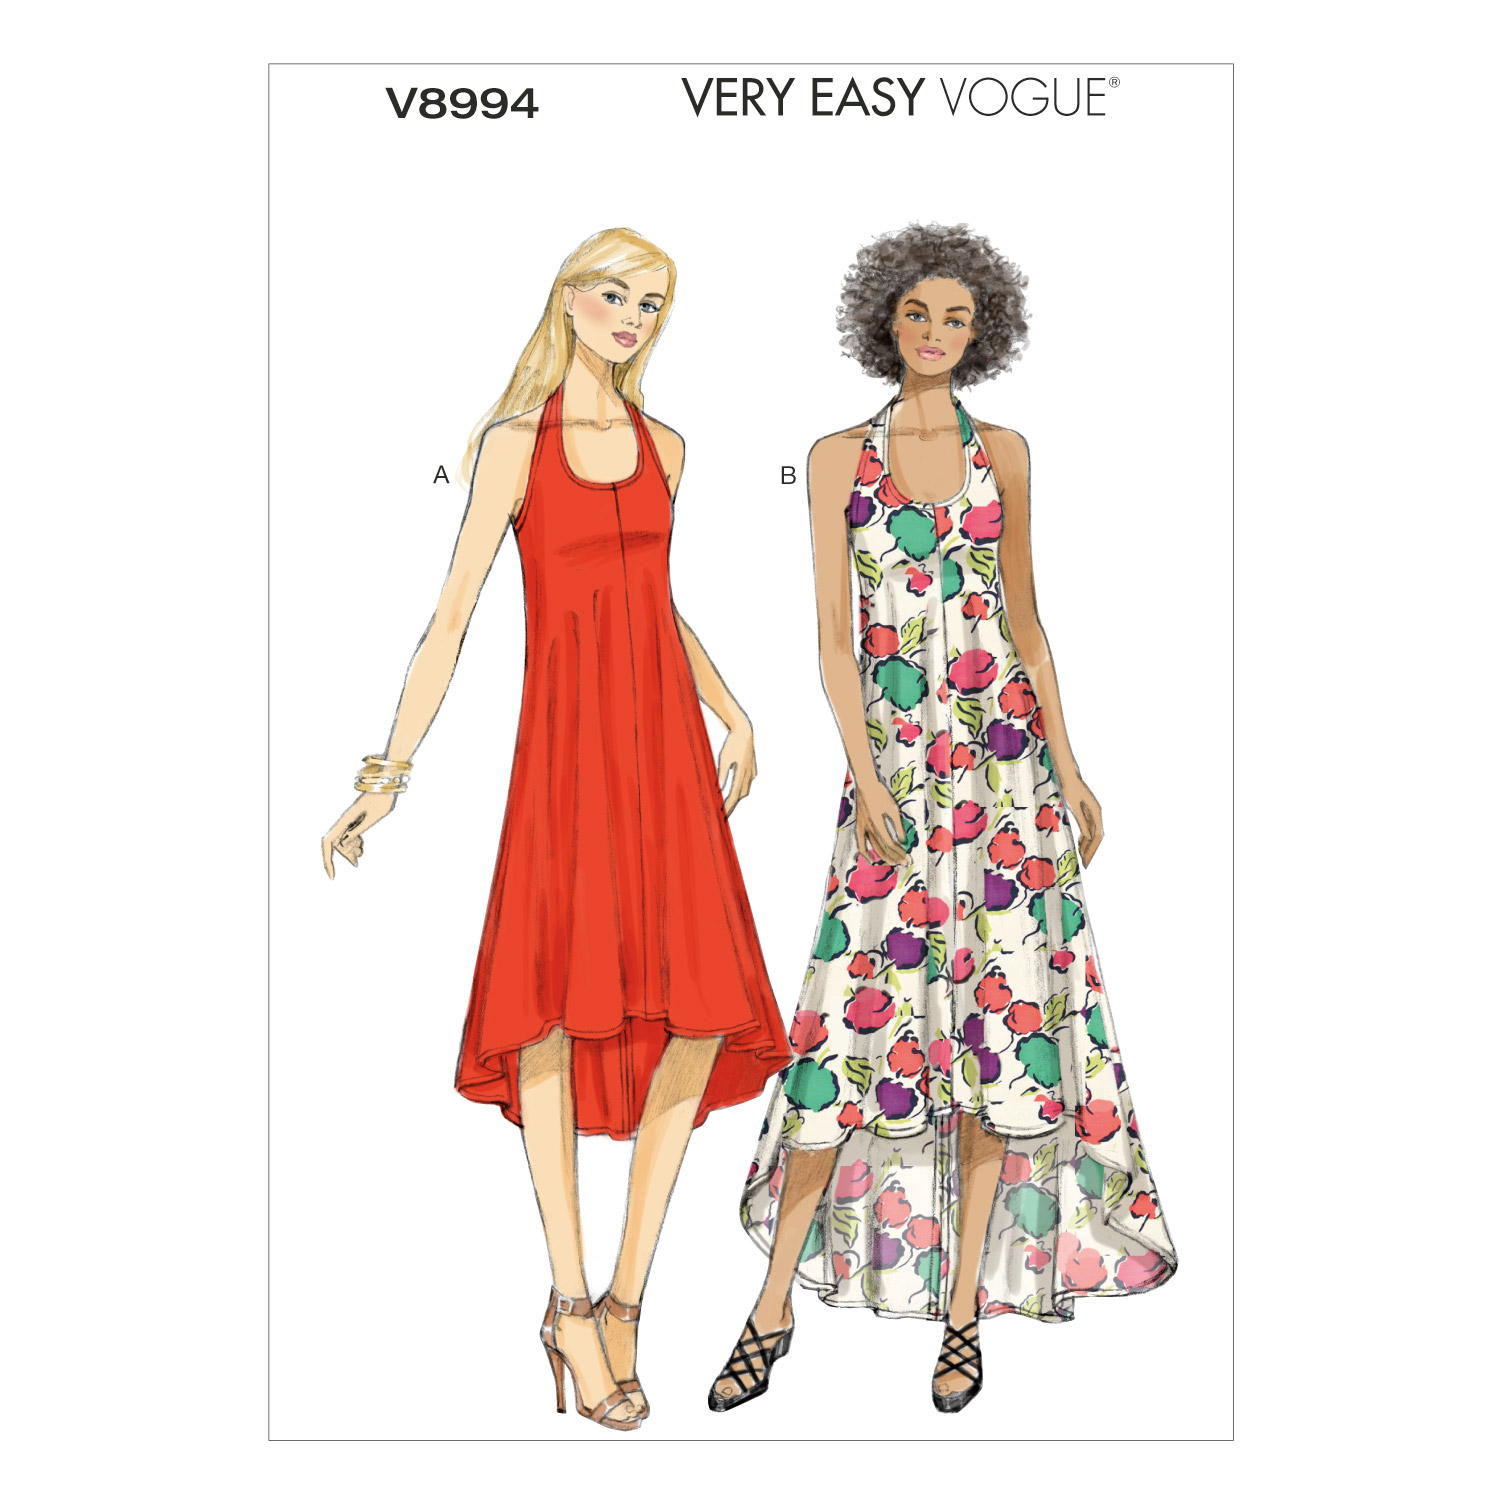 Vogue Patterns Misses Dress-V8994